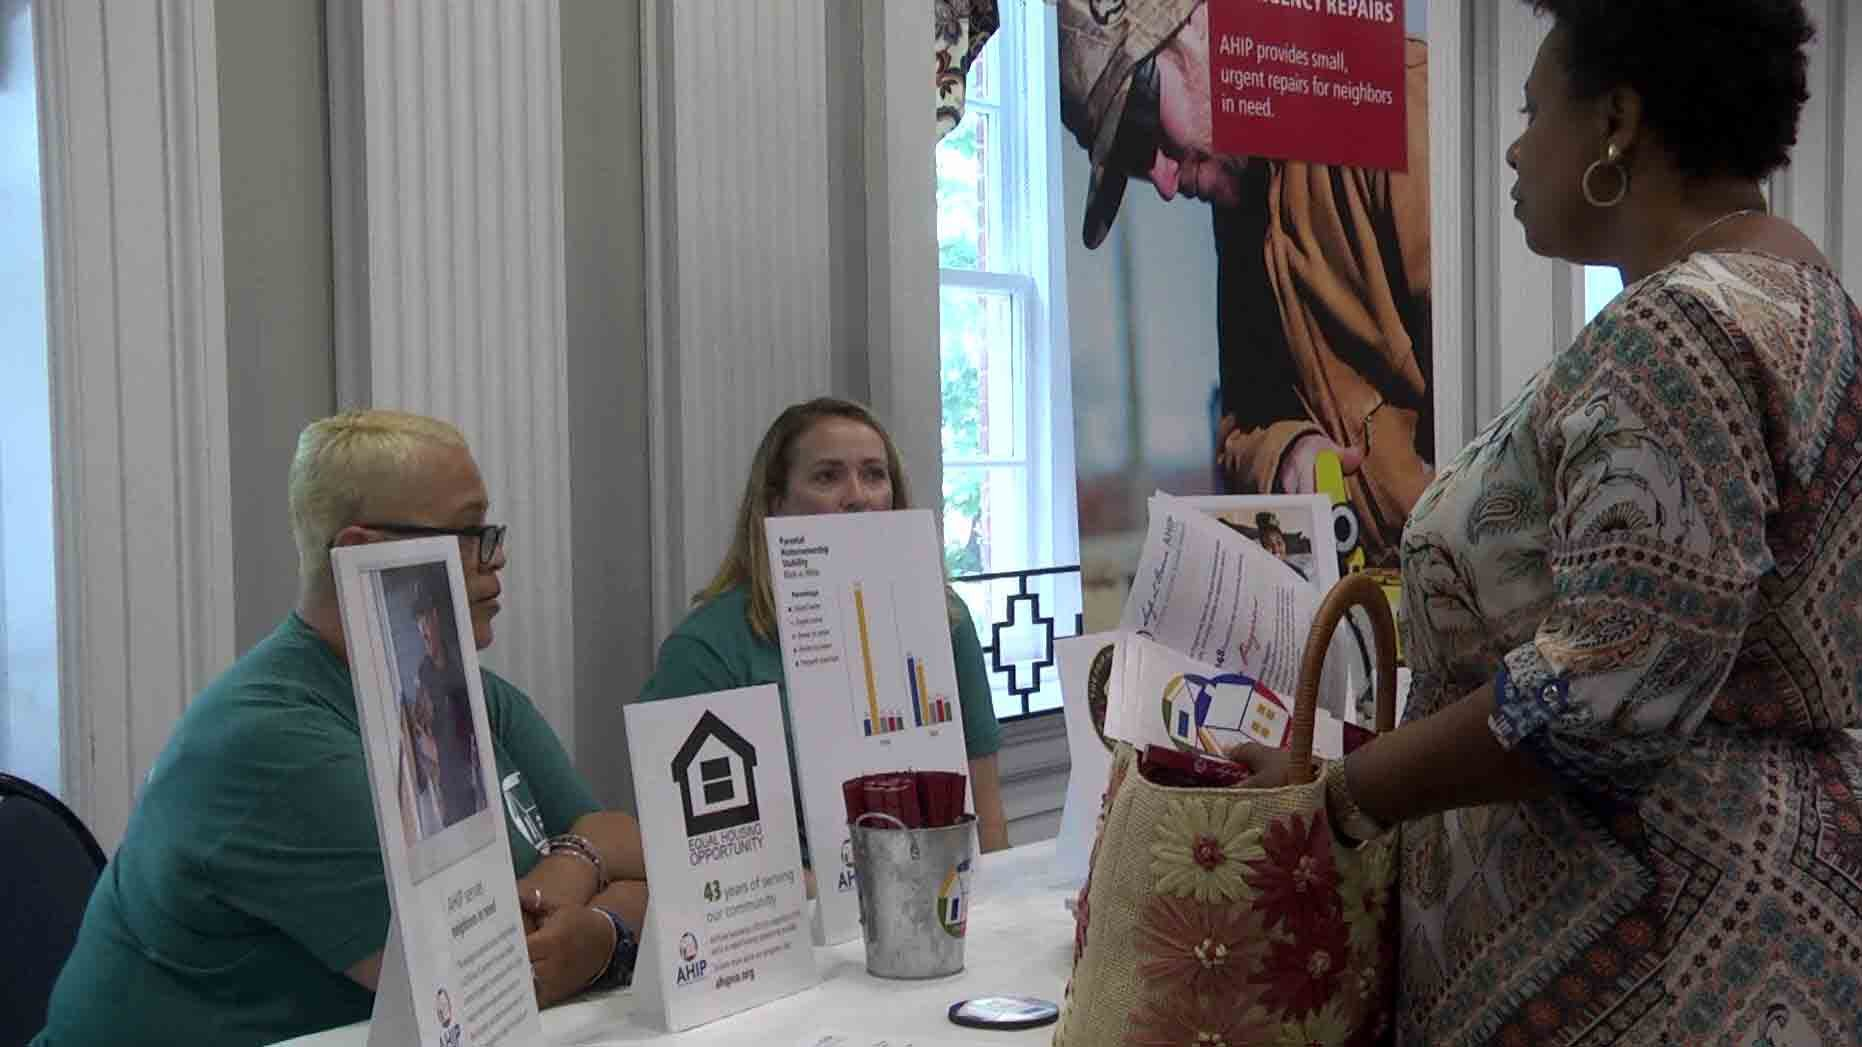 Jefferson-Madison Regional Library Hosts Affordable Housing Fair